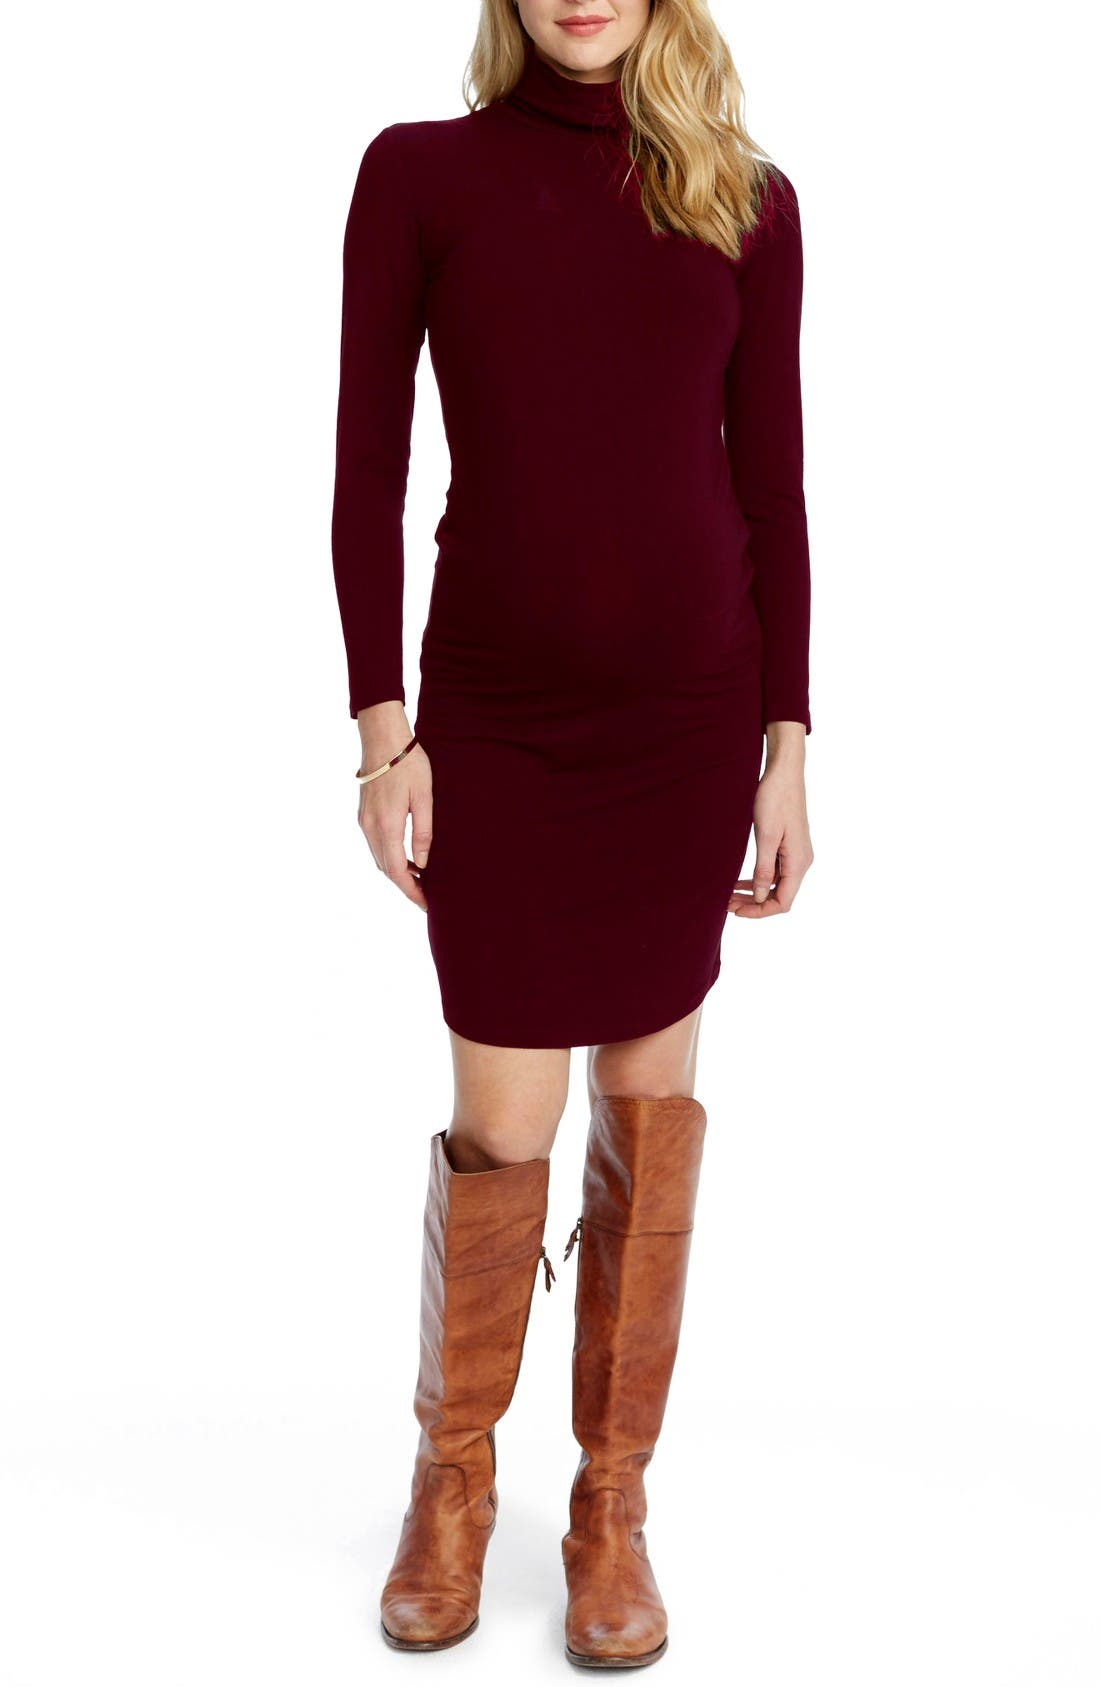 ROSIE POPE Chelsea Maternity Turtleneck Dress